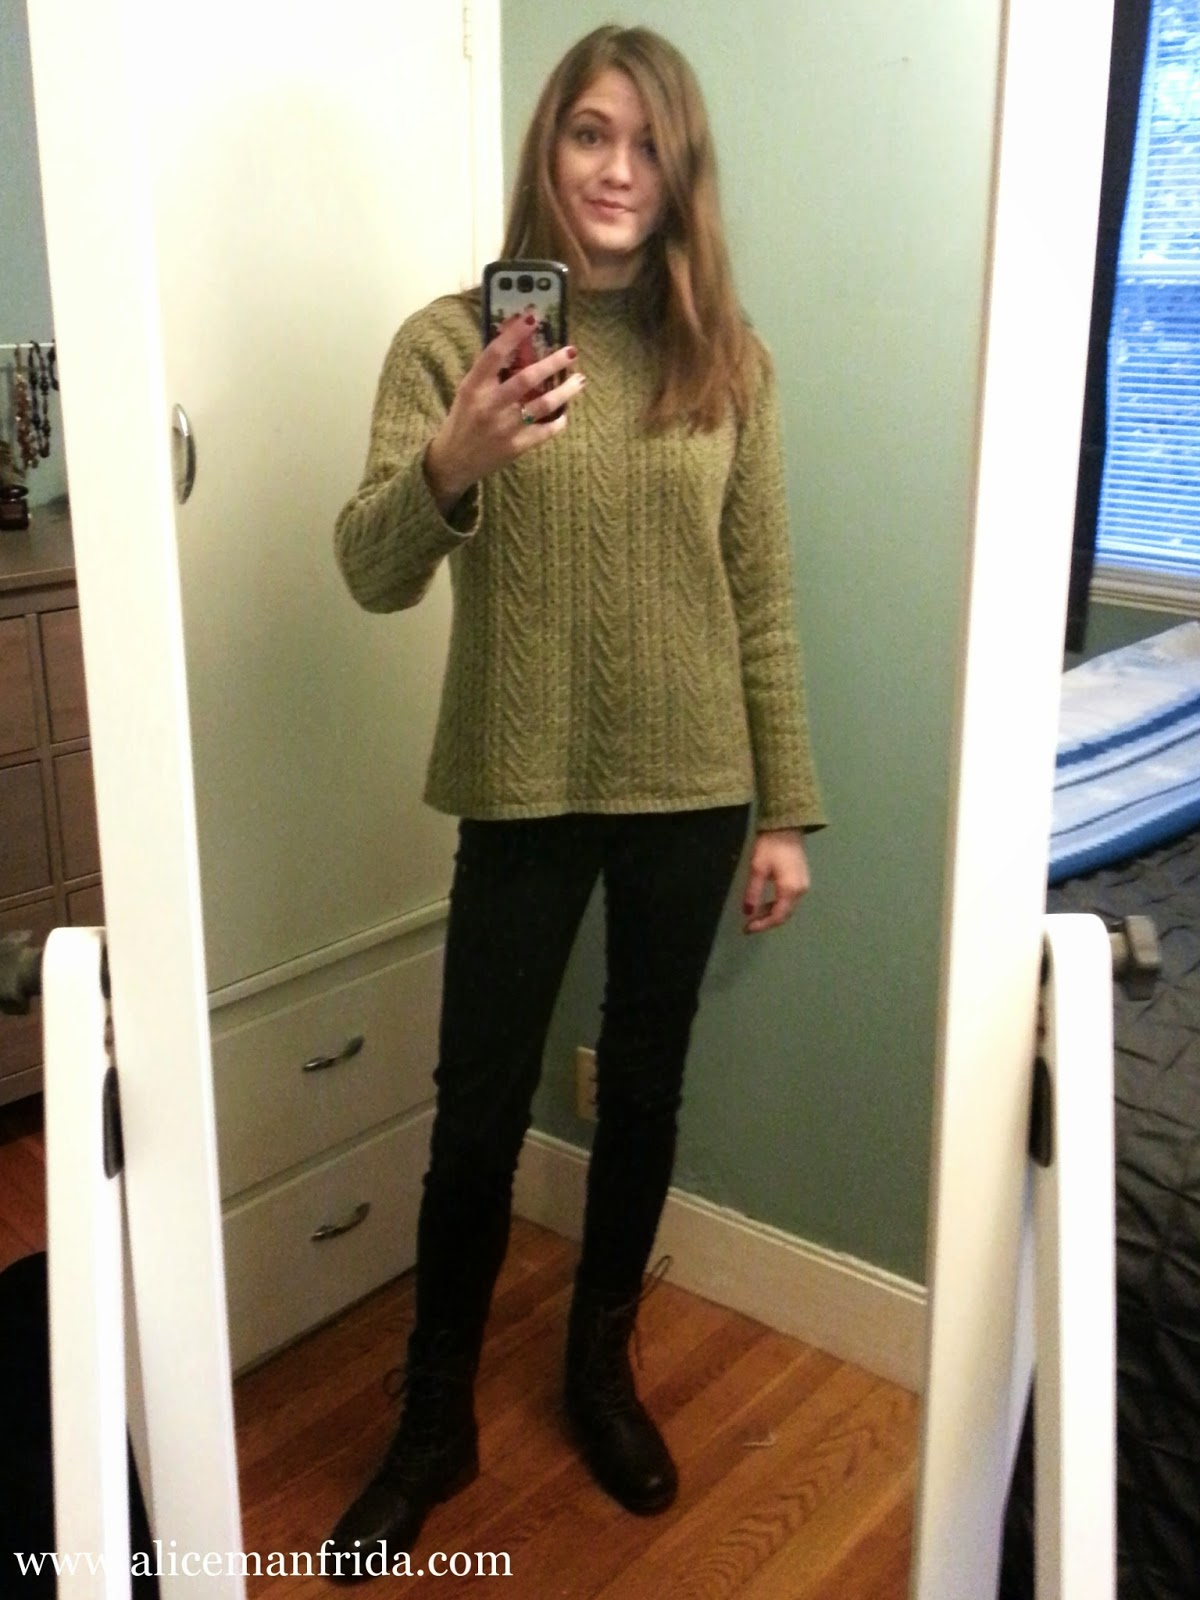 style, autumn fashion, OOTD, outfit of the day, Alice Manfrida